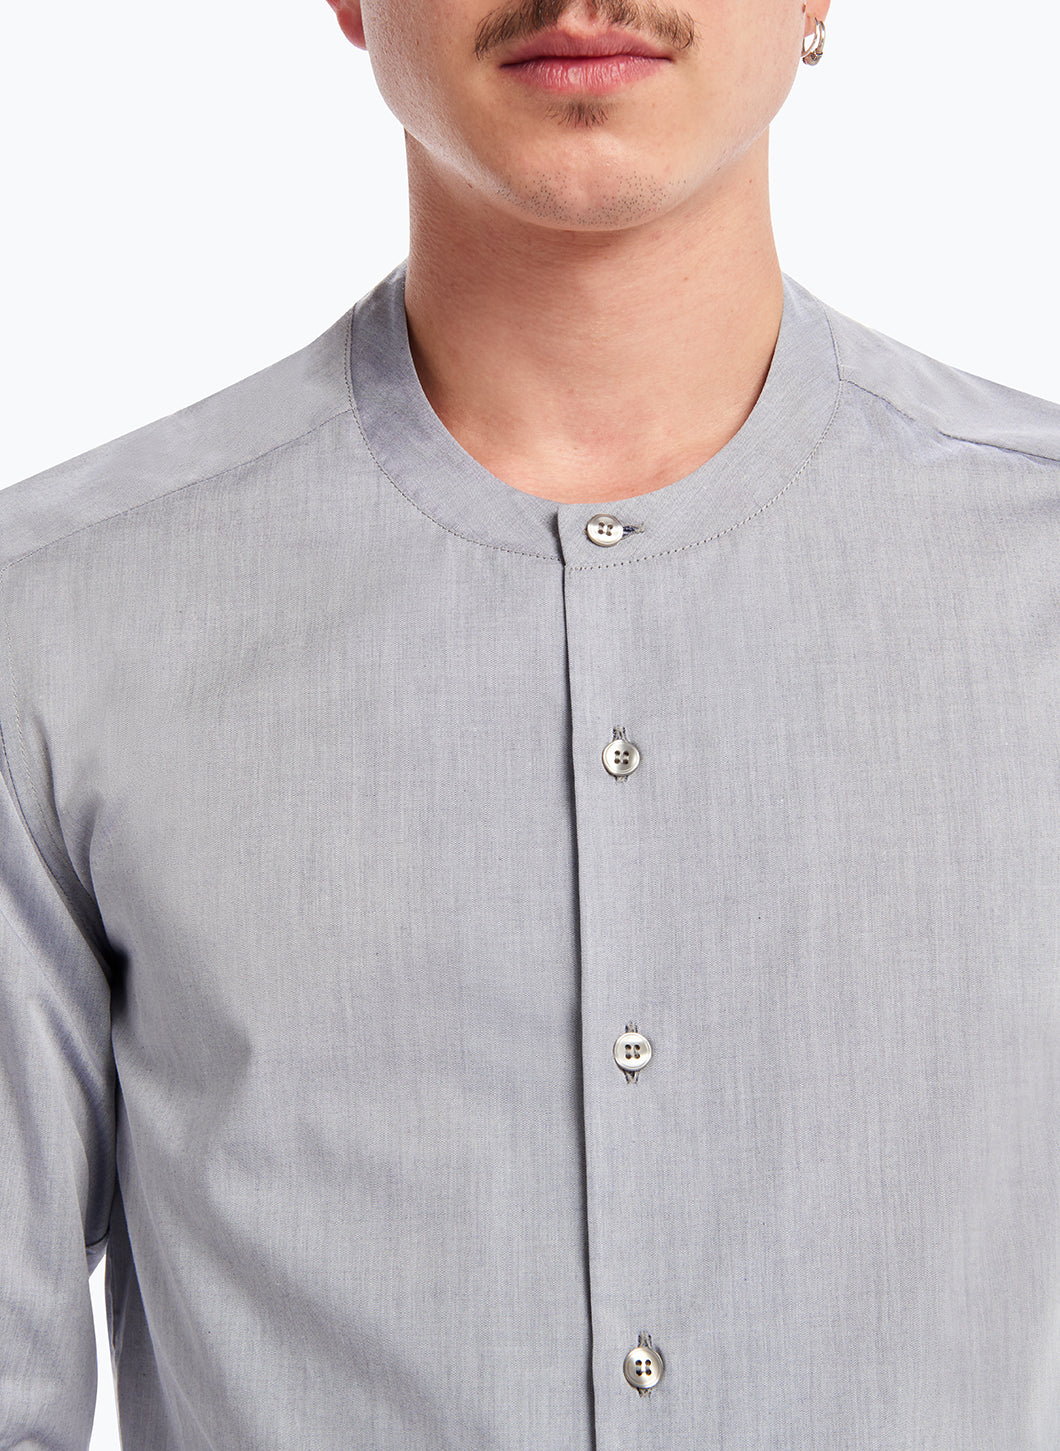 Crew Neck Shirt in Grey Poplin